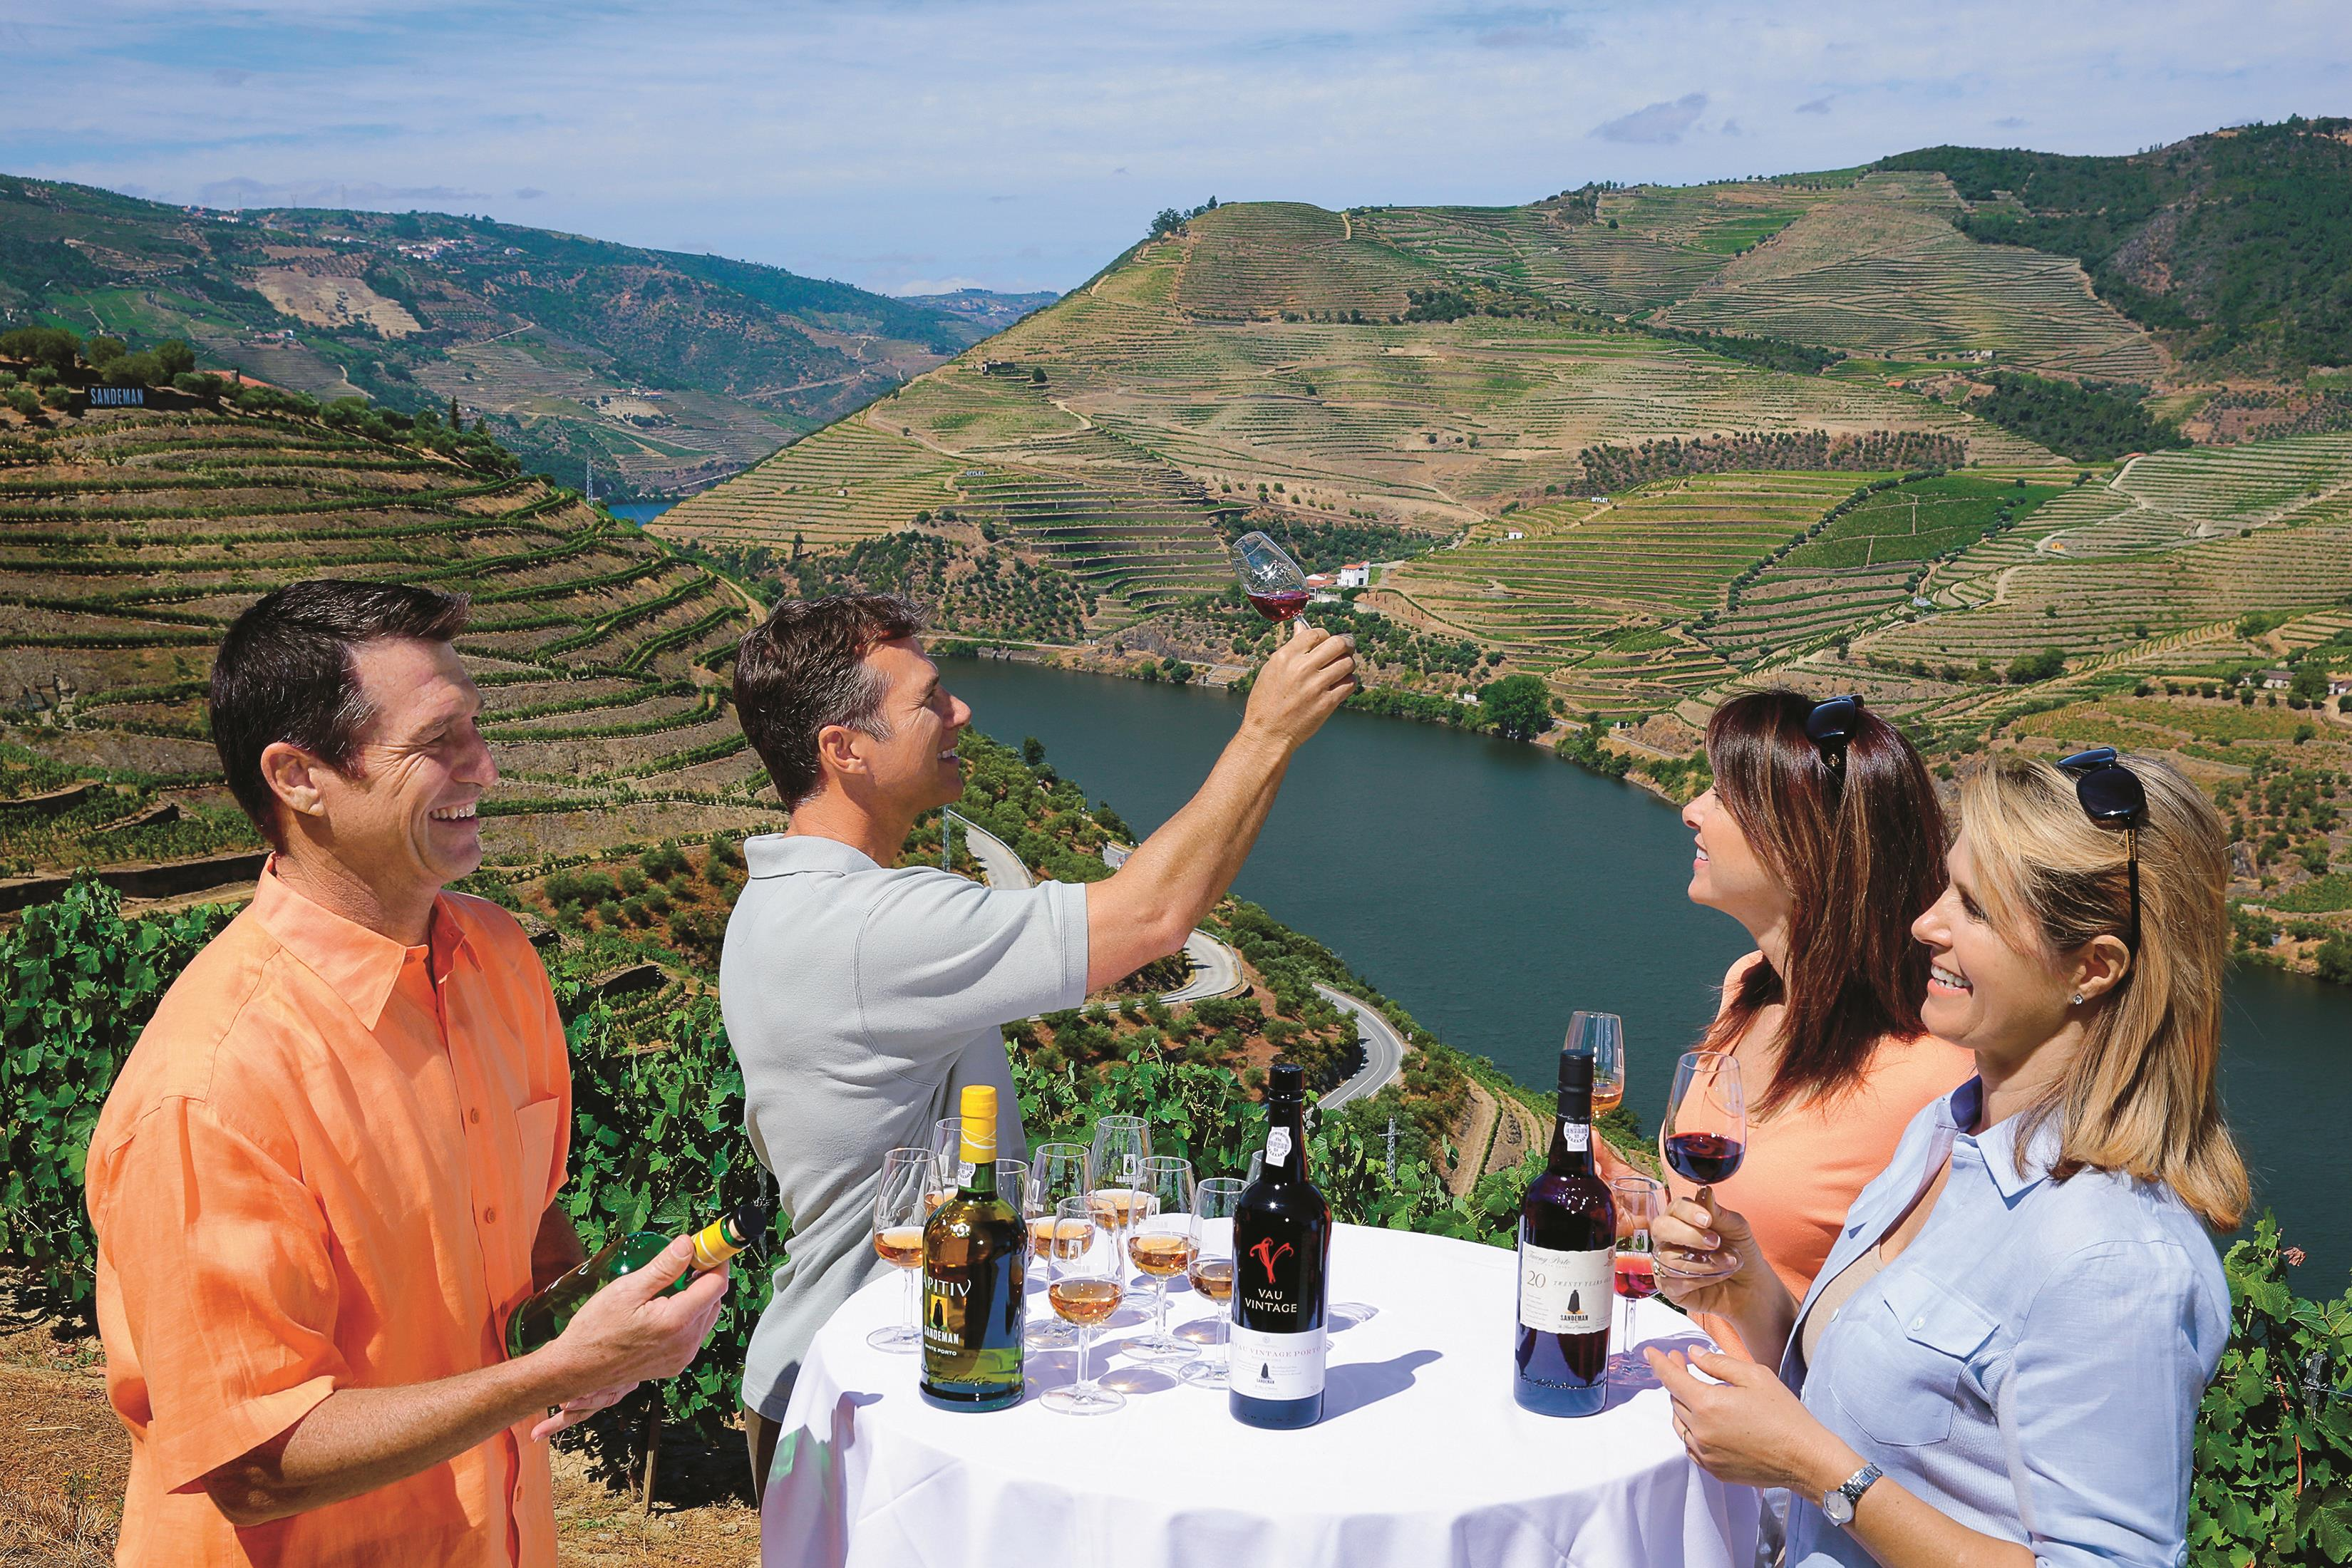 Sandeman Winery Tasting in Douro Valley